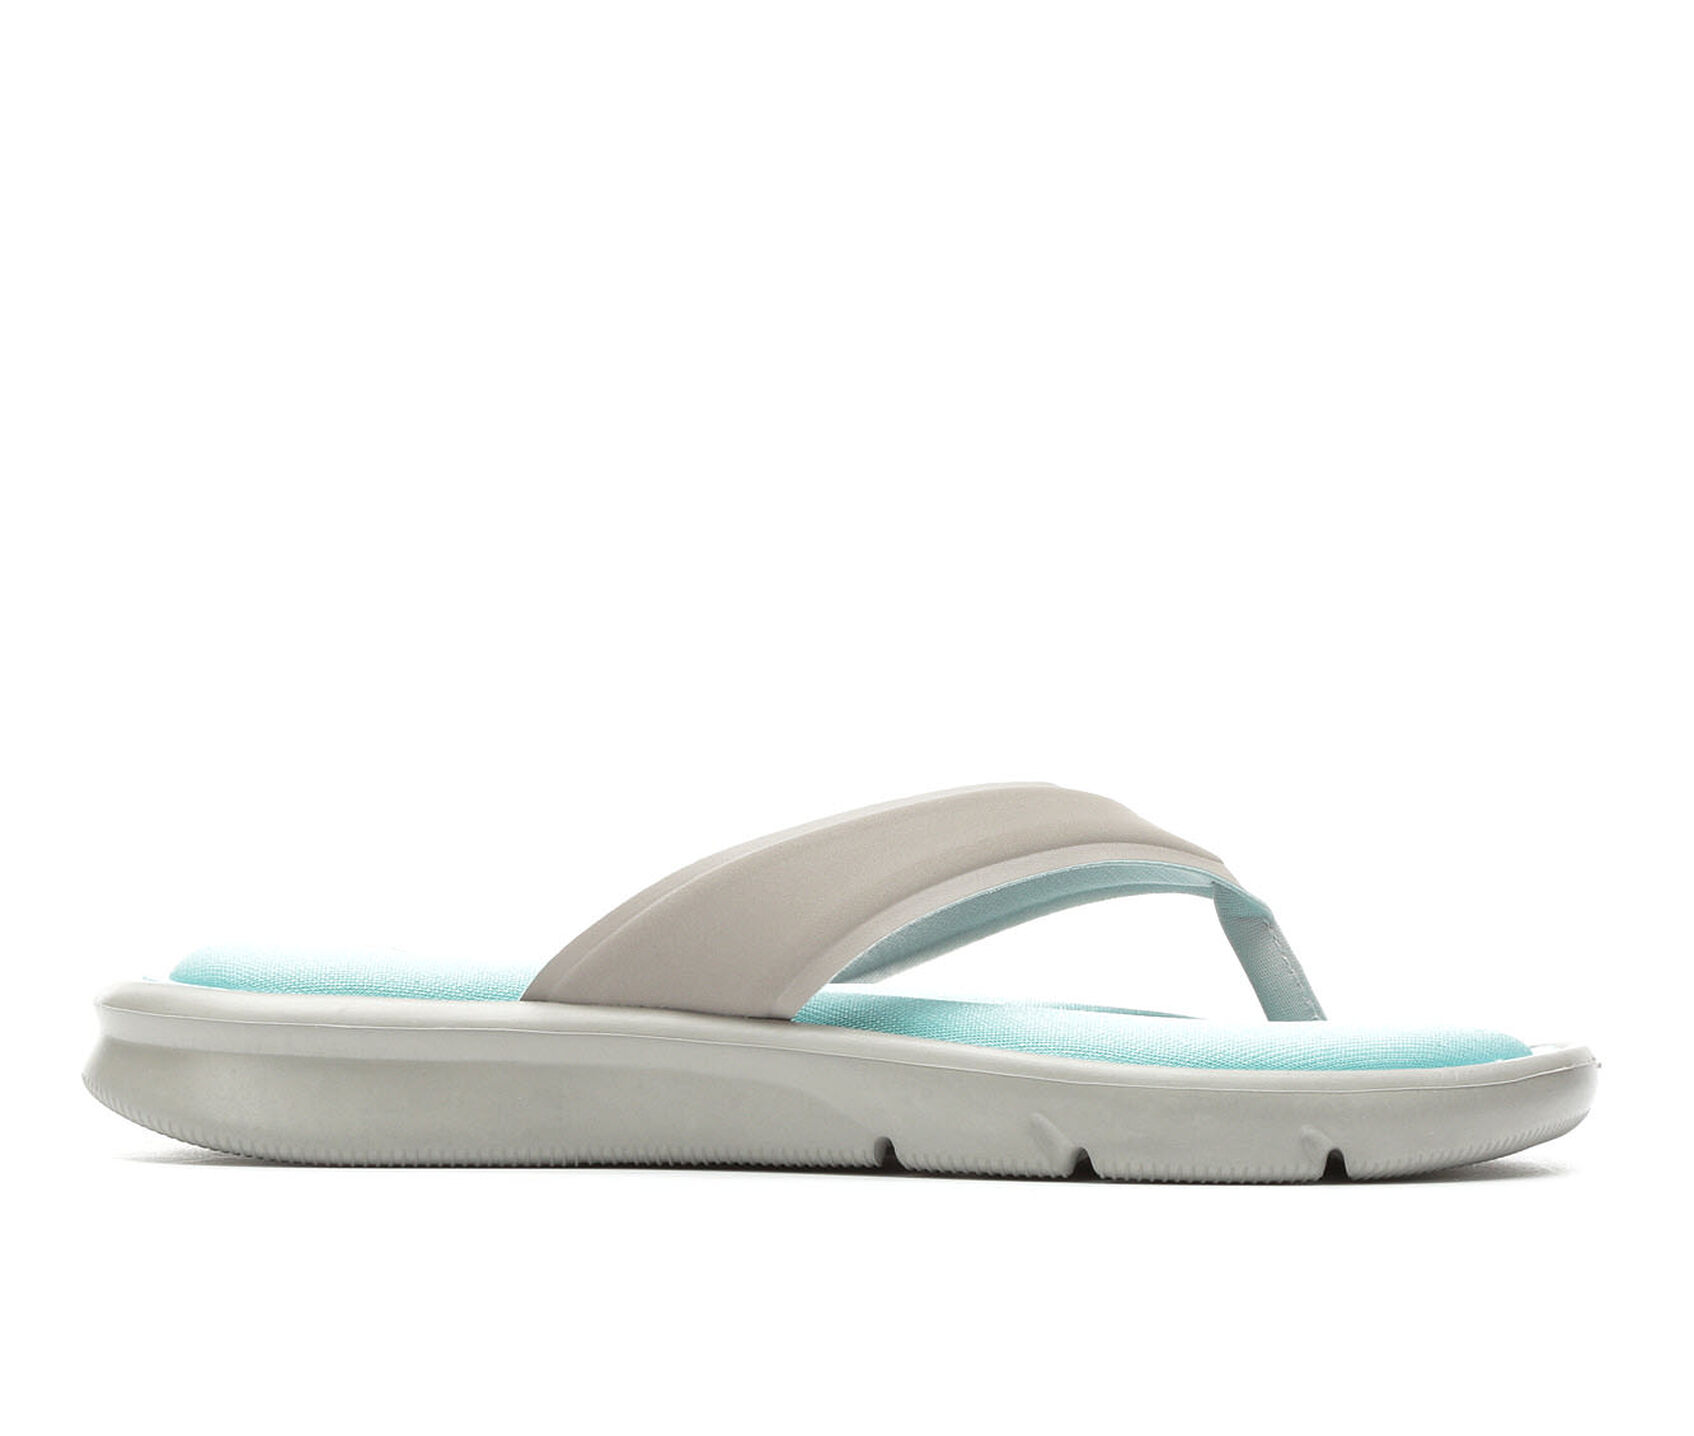 tiempo sandals free nike wolf s lifestyle shoes thong comfort women id ultra sandal womens comforter